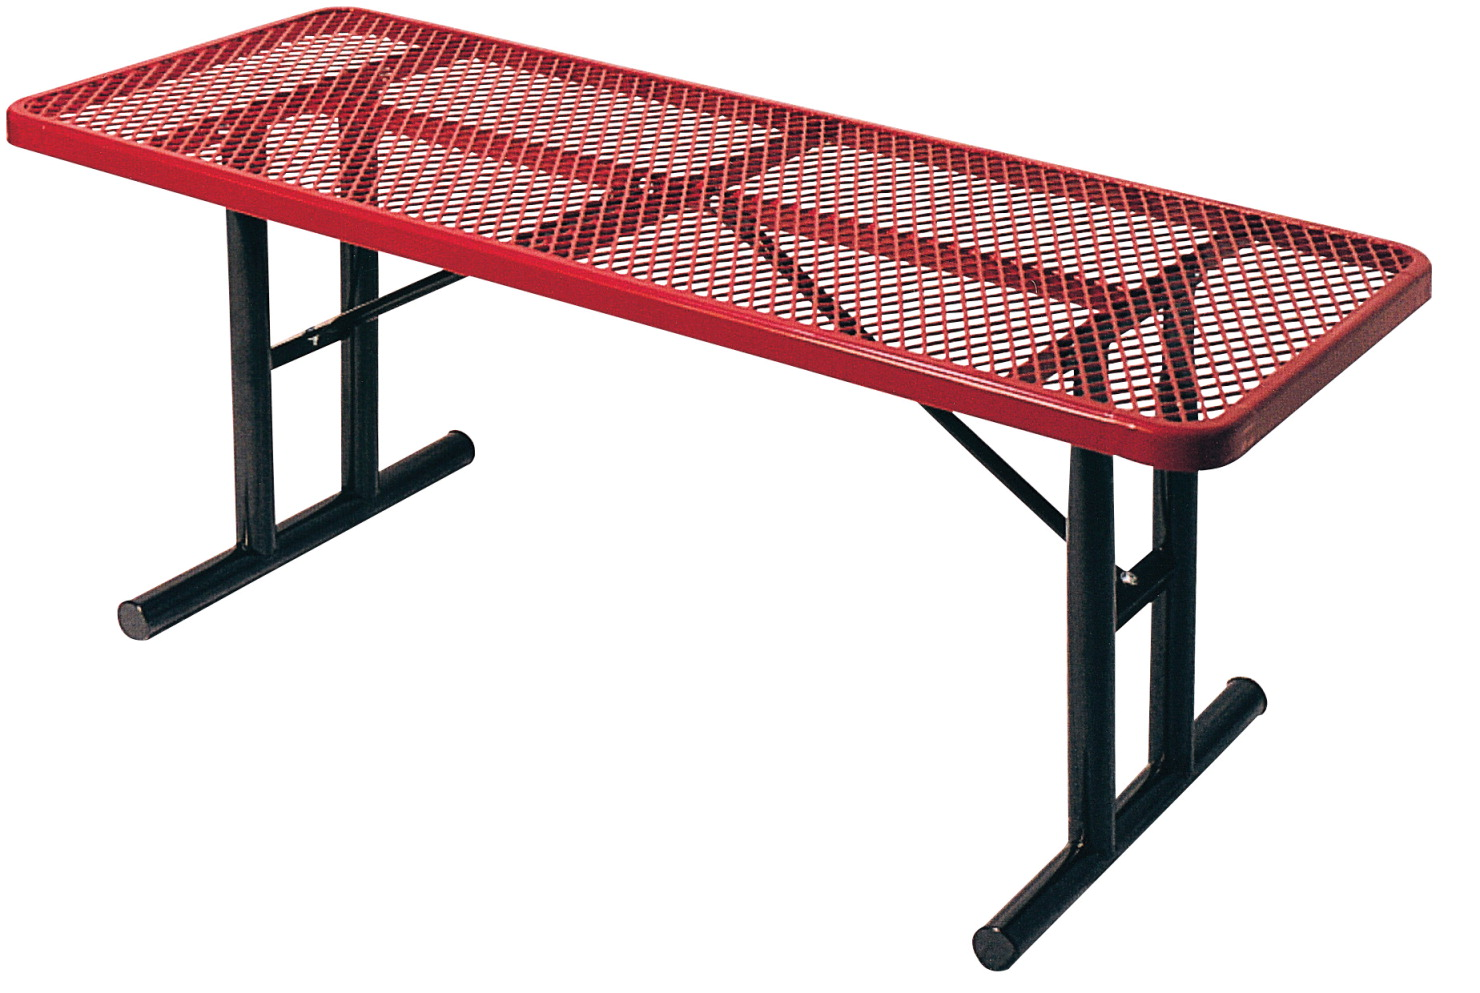 UltraSite UltraCoat Thermoplastic Utility Table, Diamond Pattern, 72 X 28-15/16 x 28-15/16 Inches, Various Options